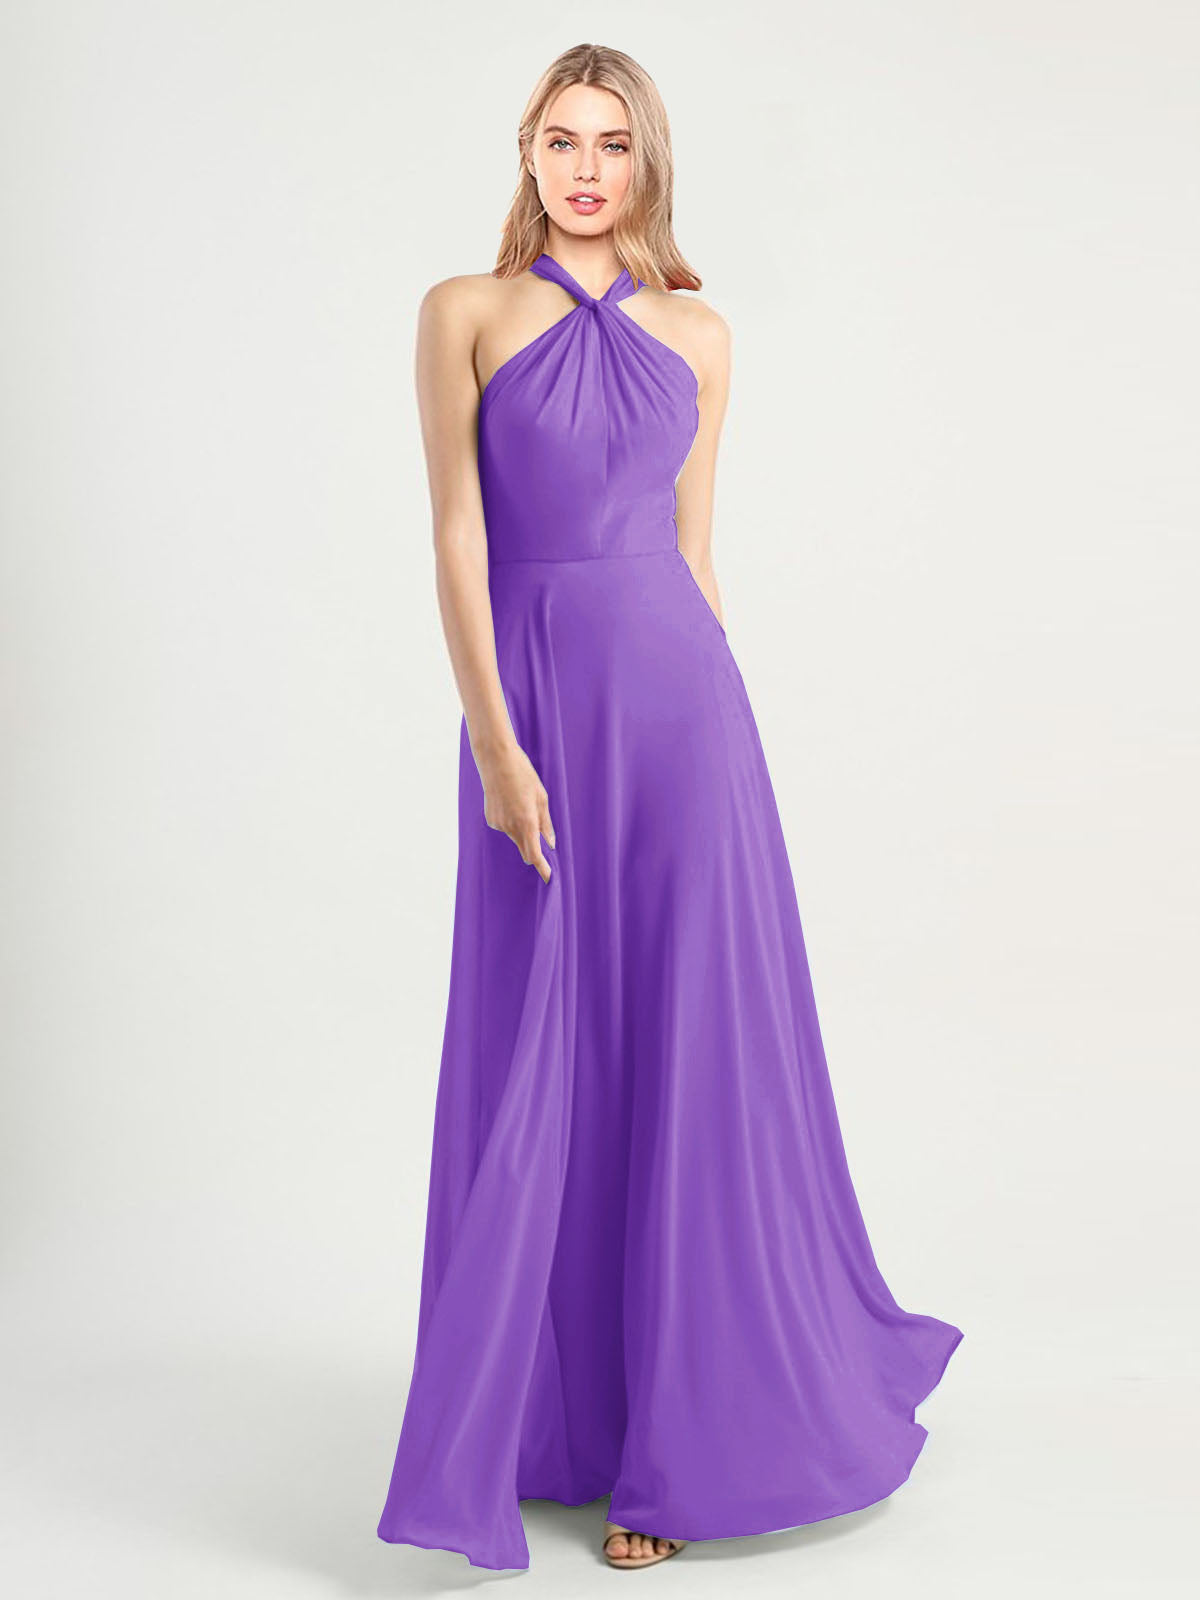 Long A-Line High Neck, Halter Sleeveless Tahiti Chiffon Bridesmaid Dress Yoli